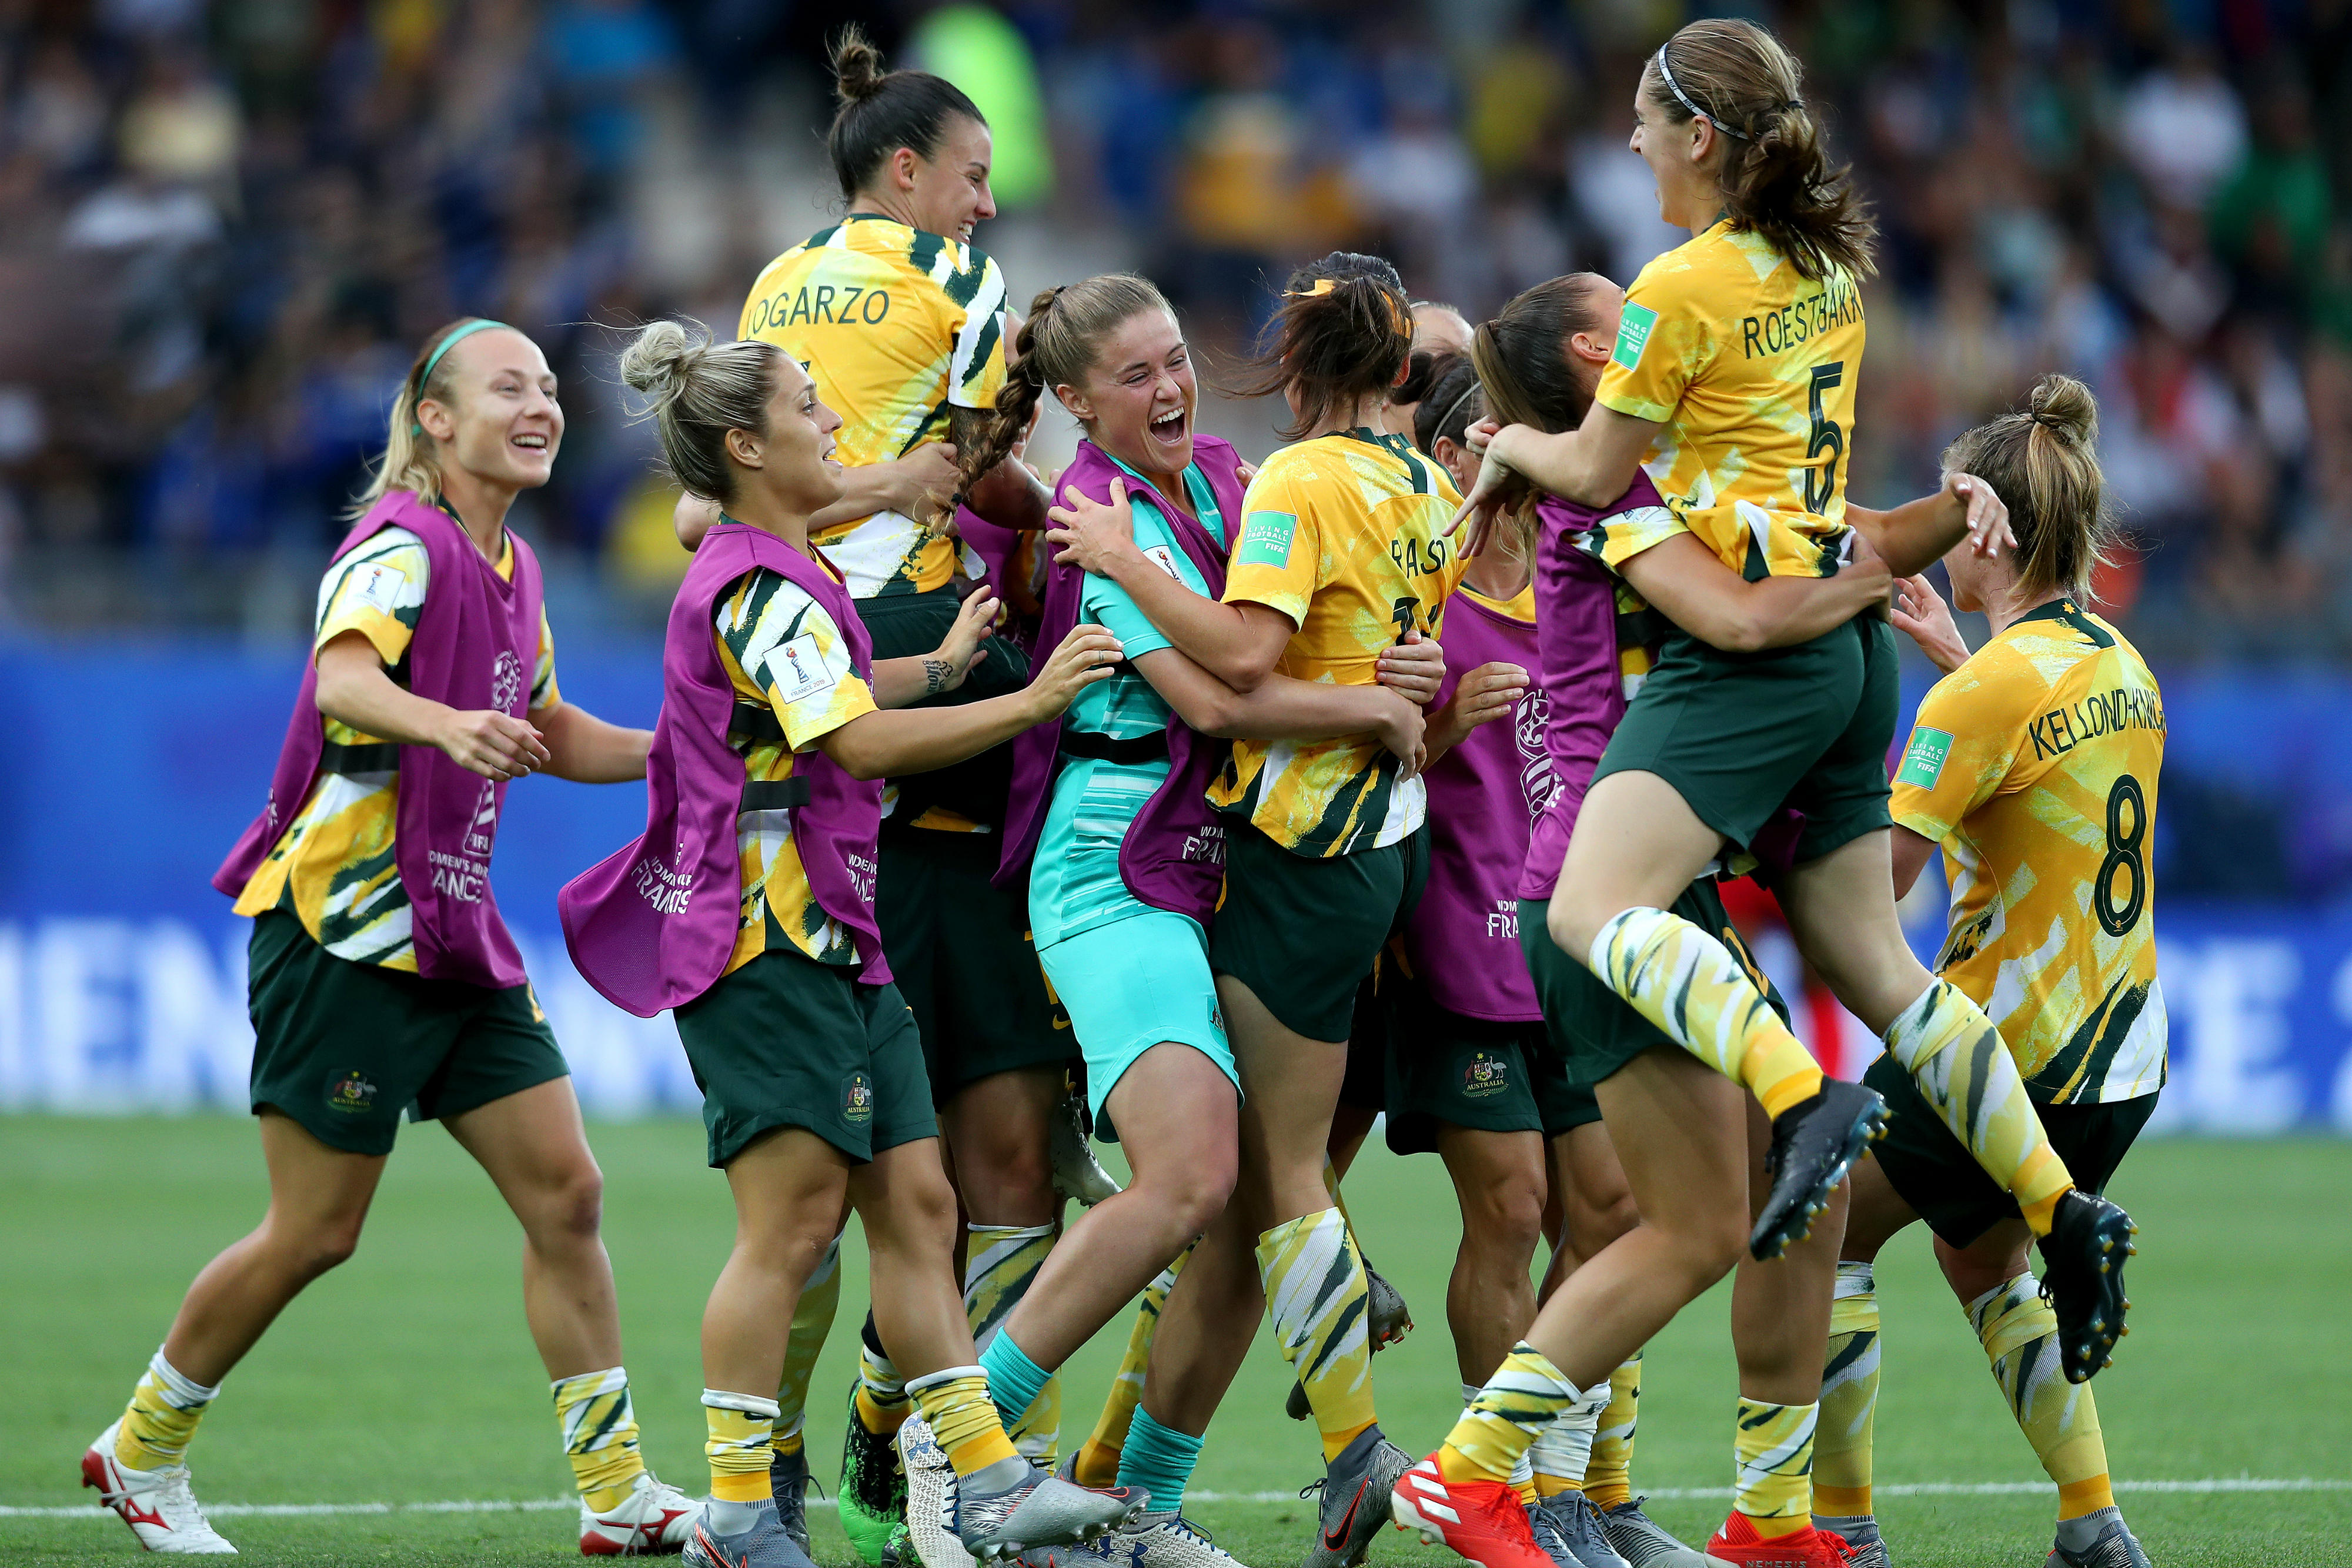 Australia come from two goals down to beat Brazil 3-2 at 2019 FIFA Women's World Cup